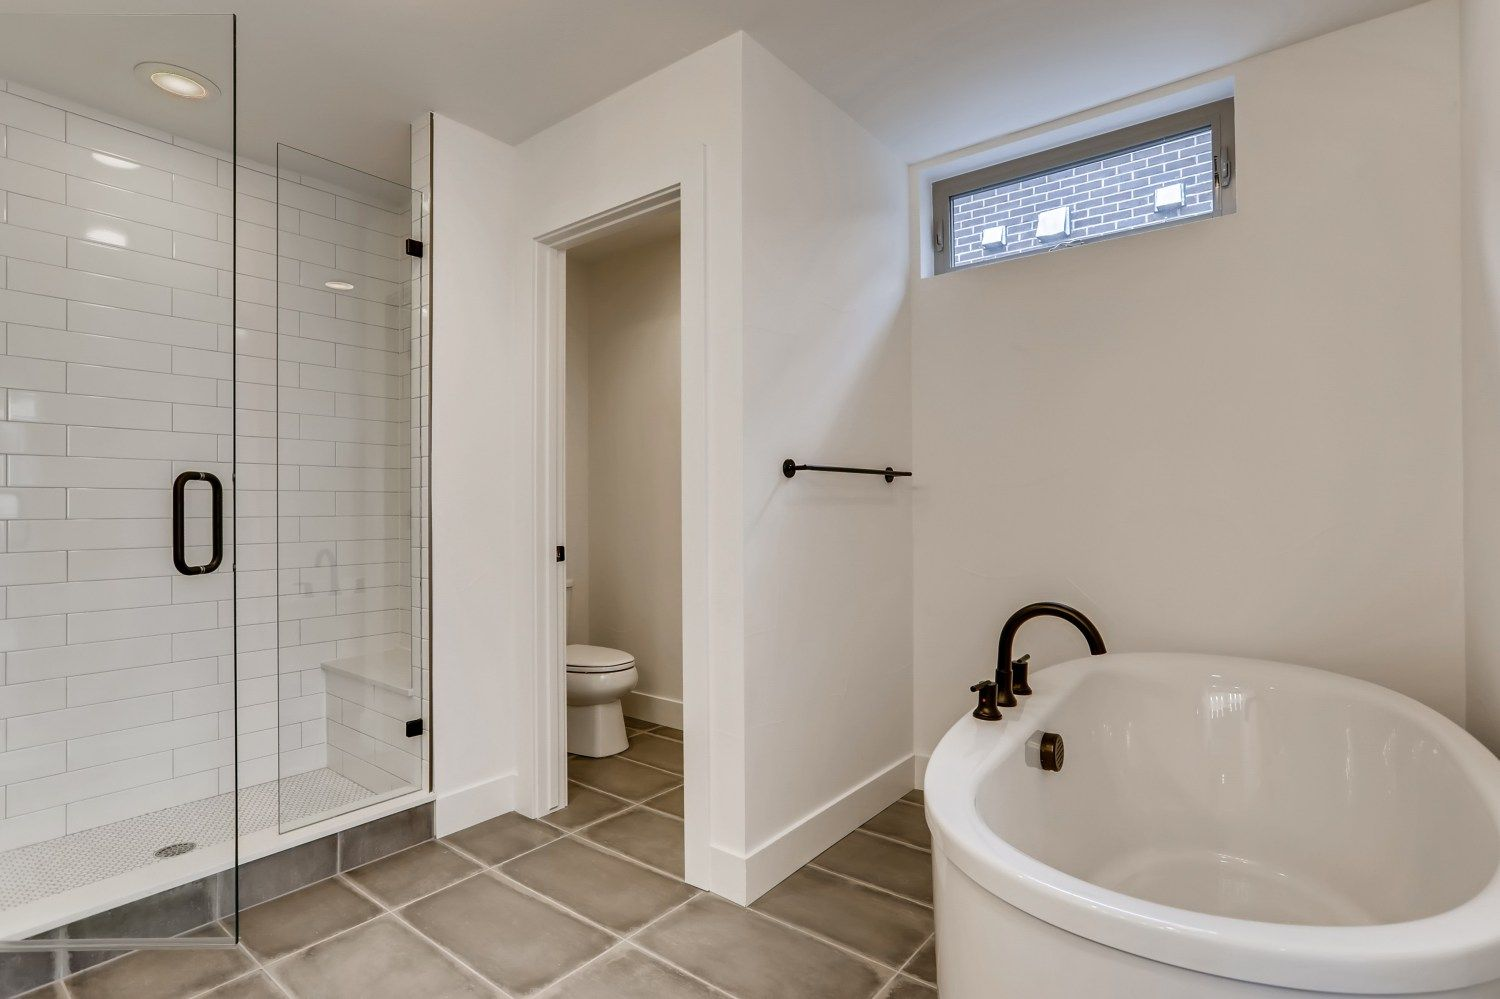 Bathroom featured in the D Unit By Koelbel Urban Homes in Denver, CO